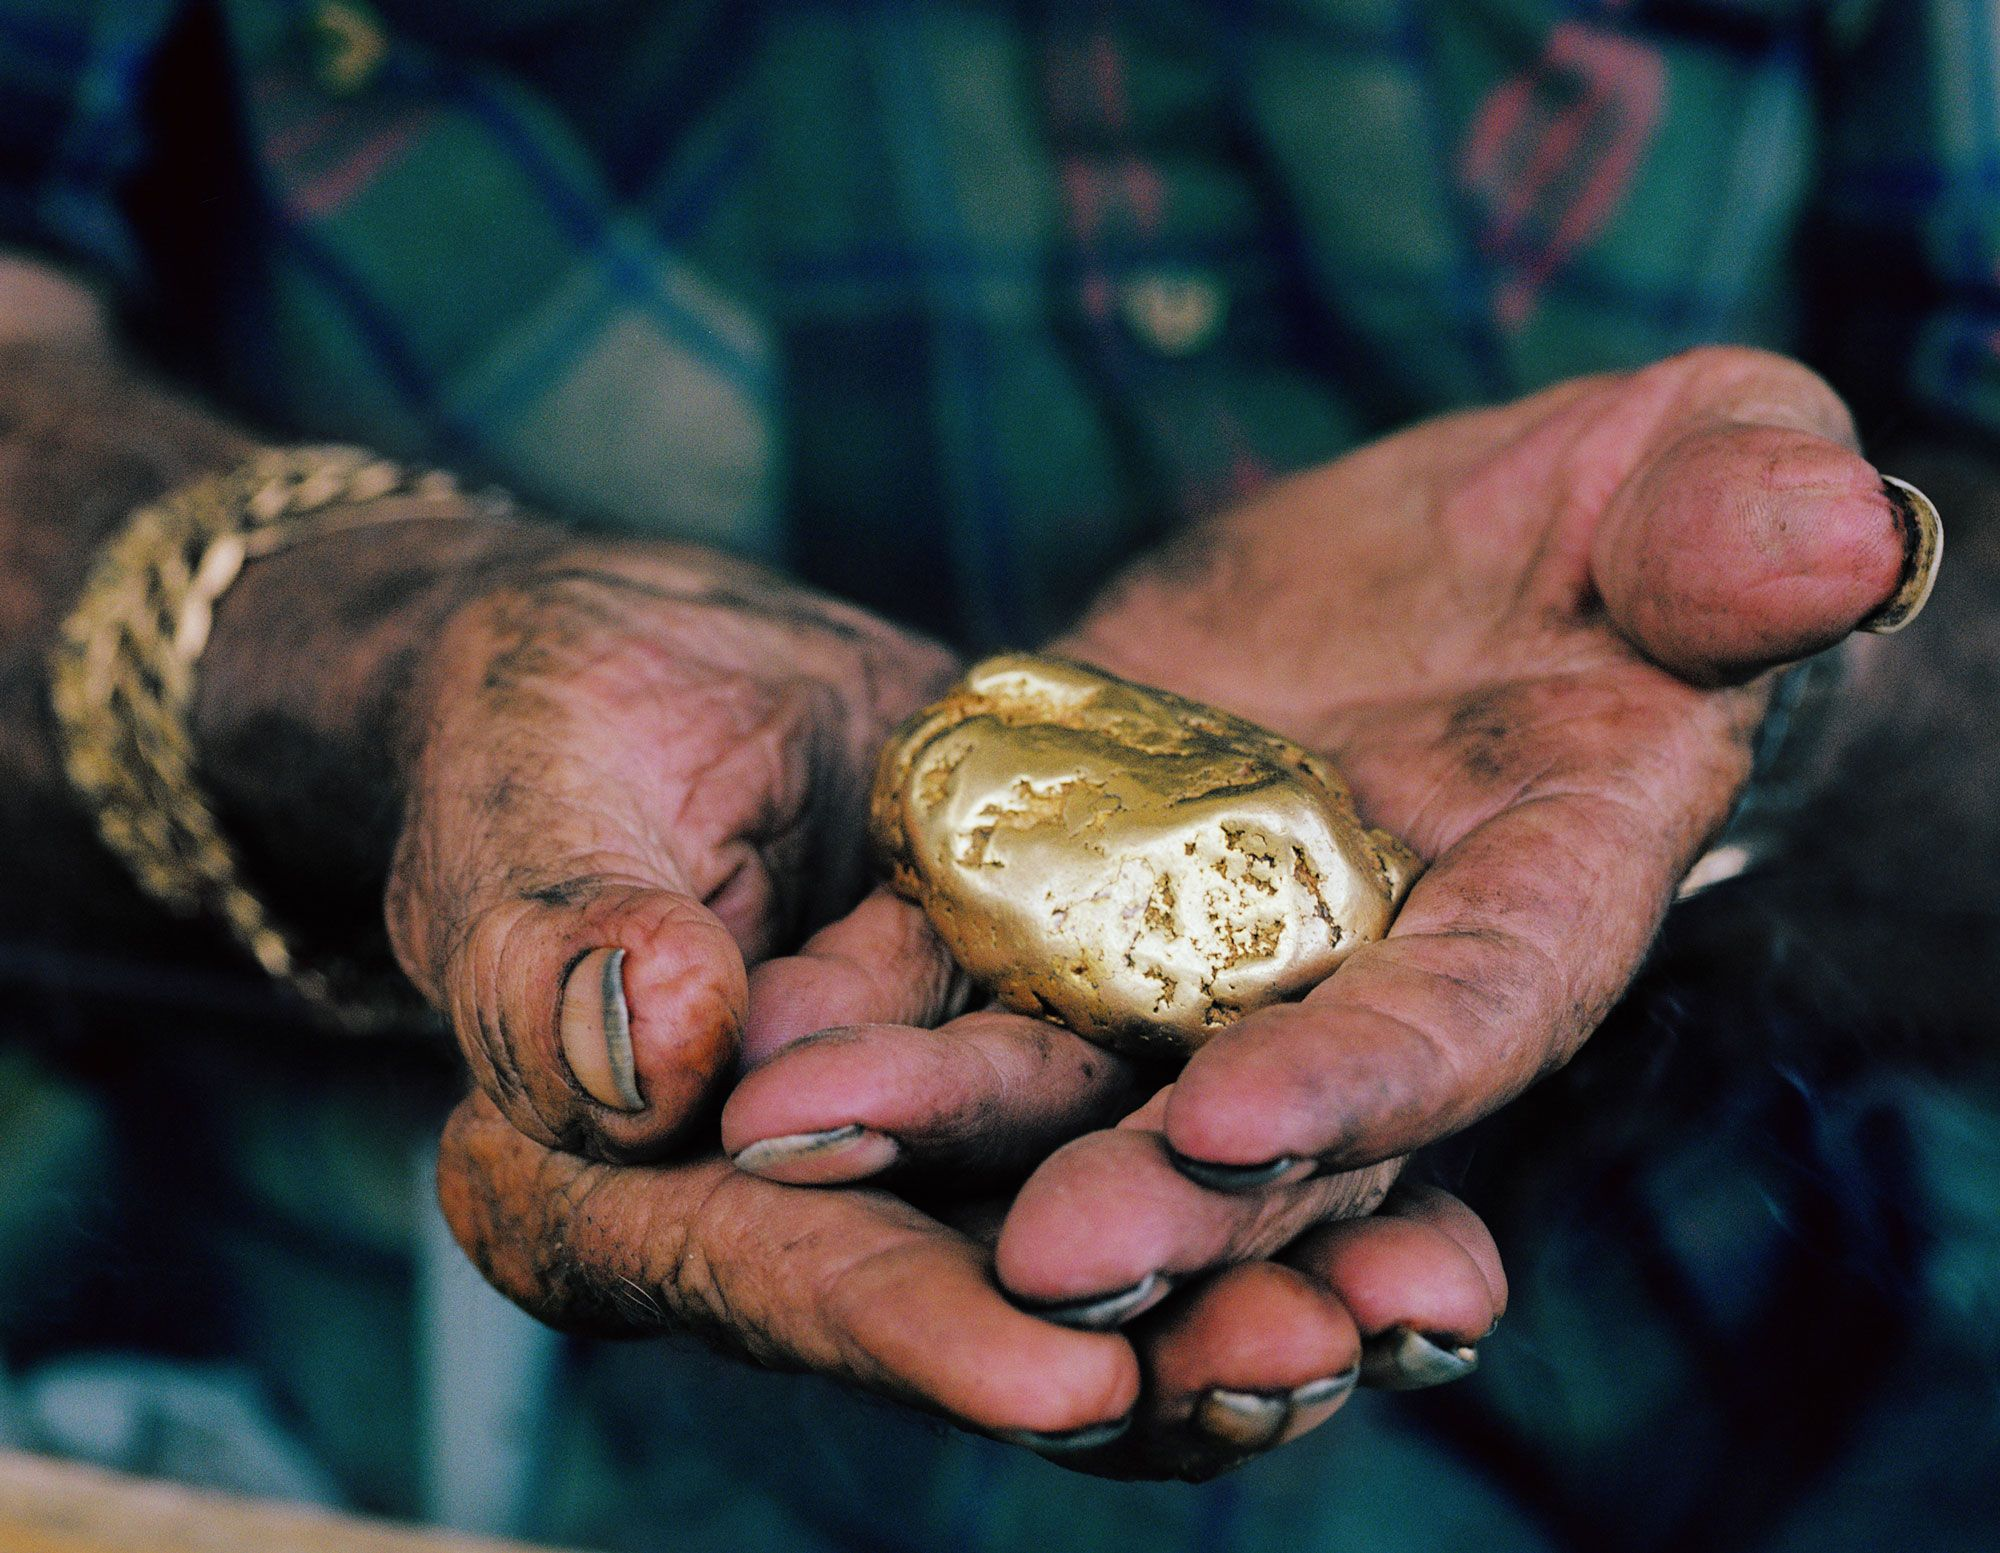 Image from: http://thebullionmag.com/articles/prospecting-for-gold/